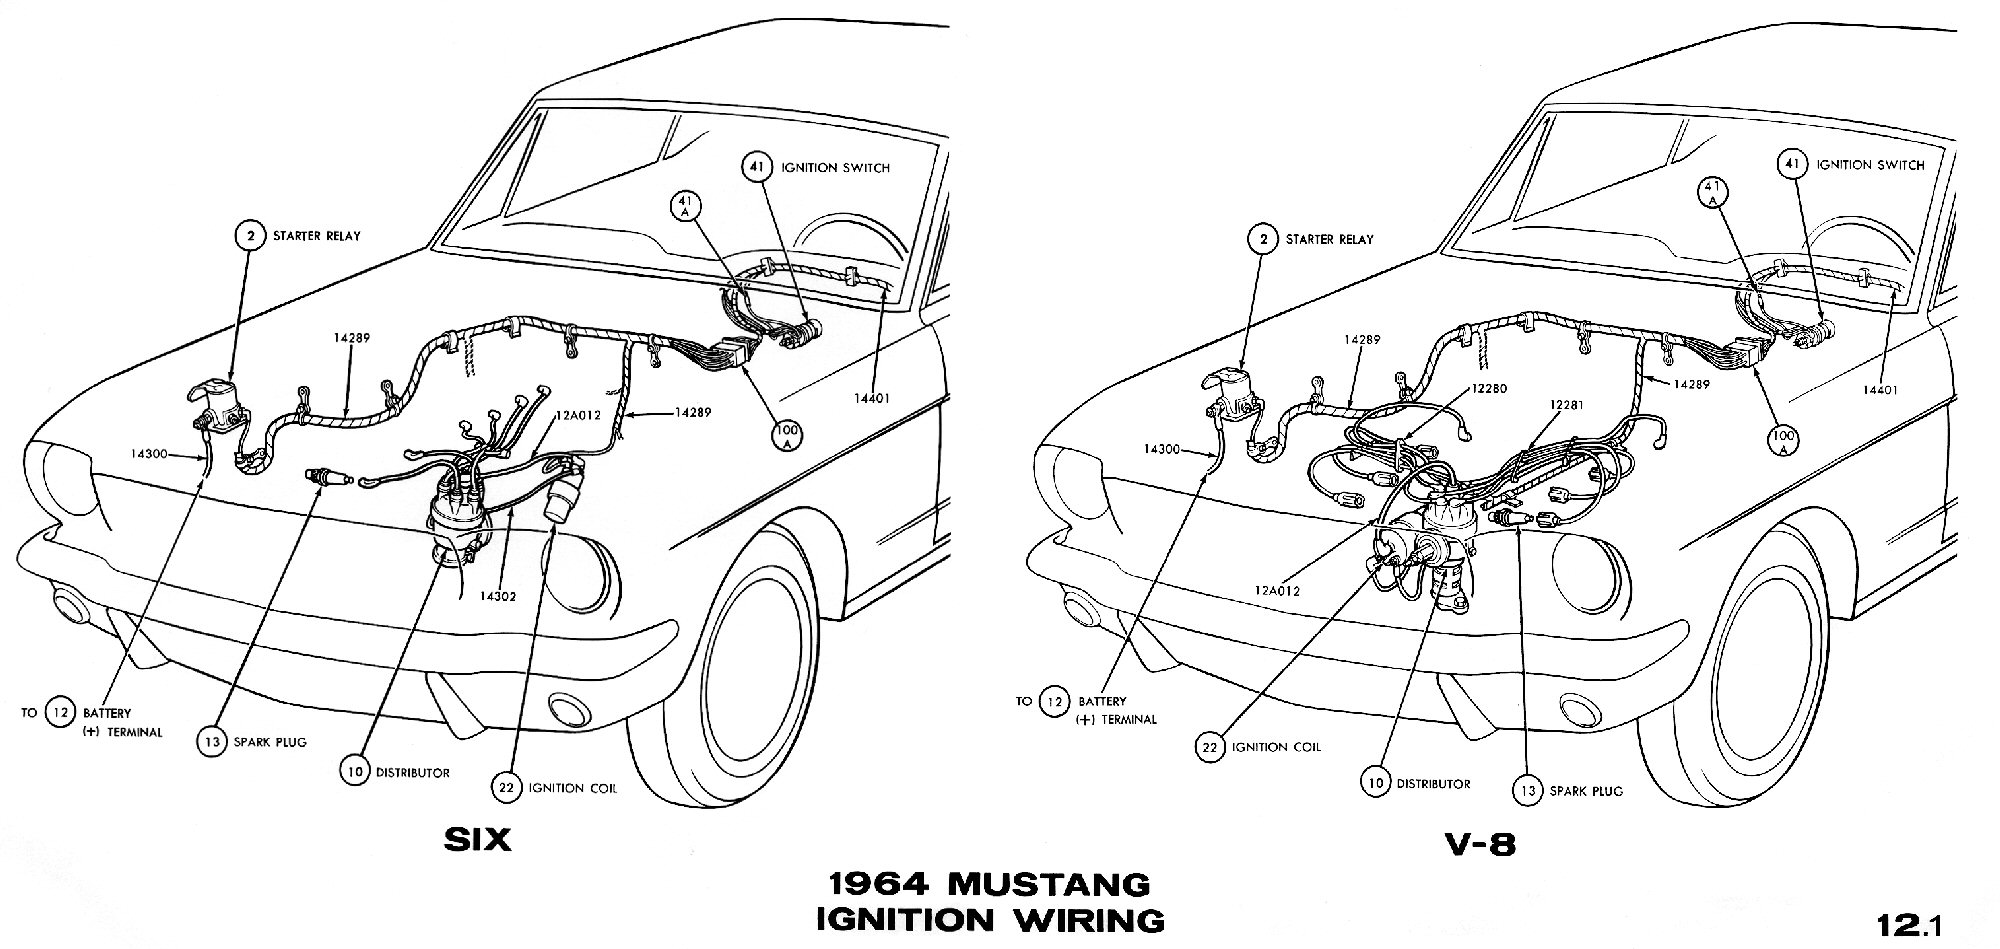 hight resolution of 1964 mustang ignition wiring